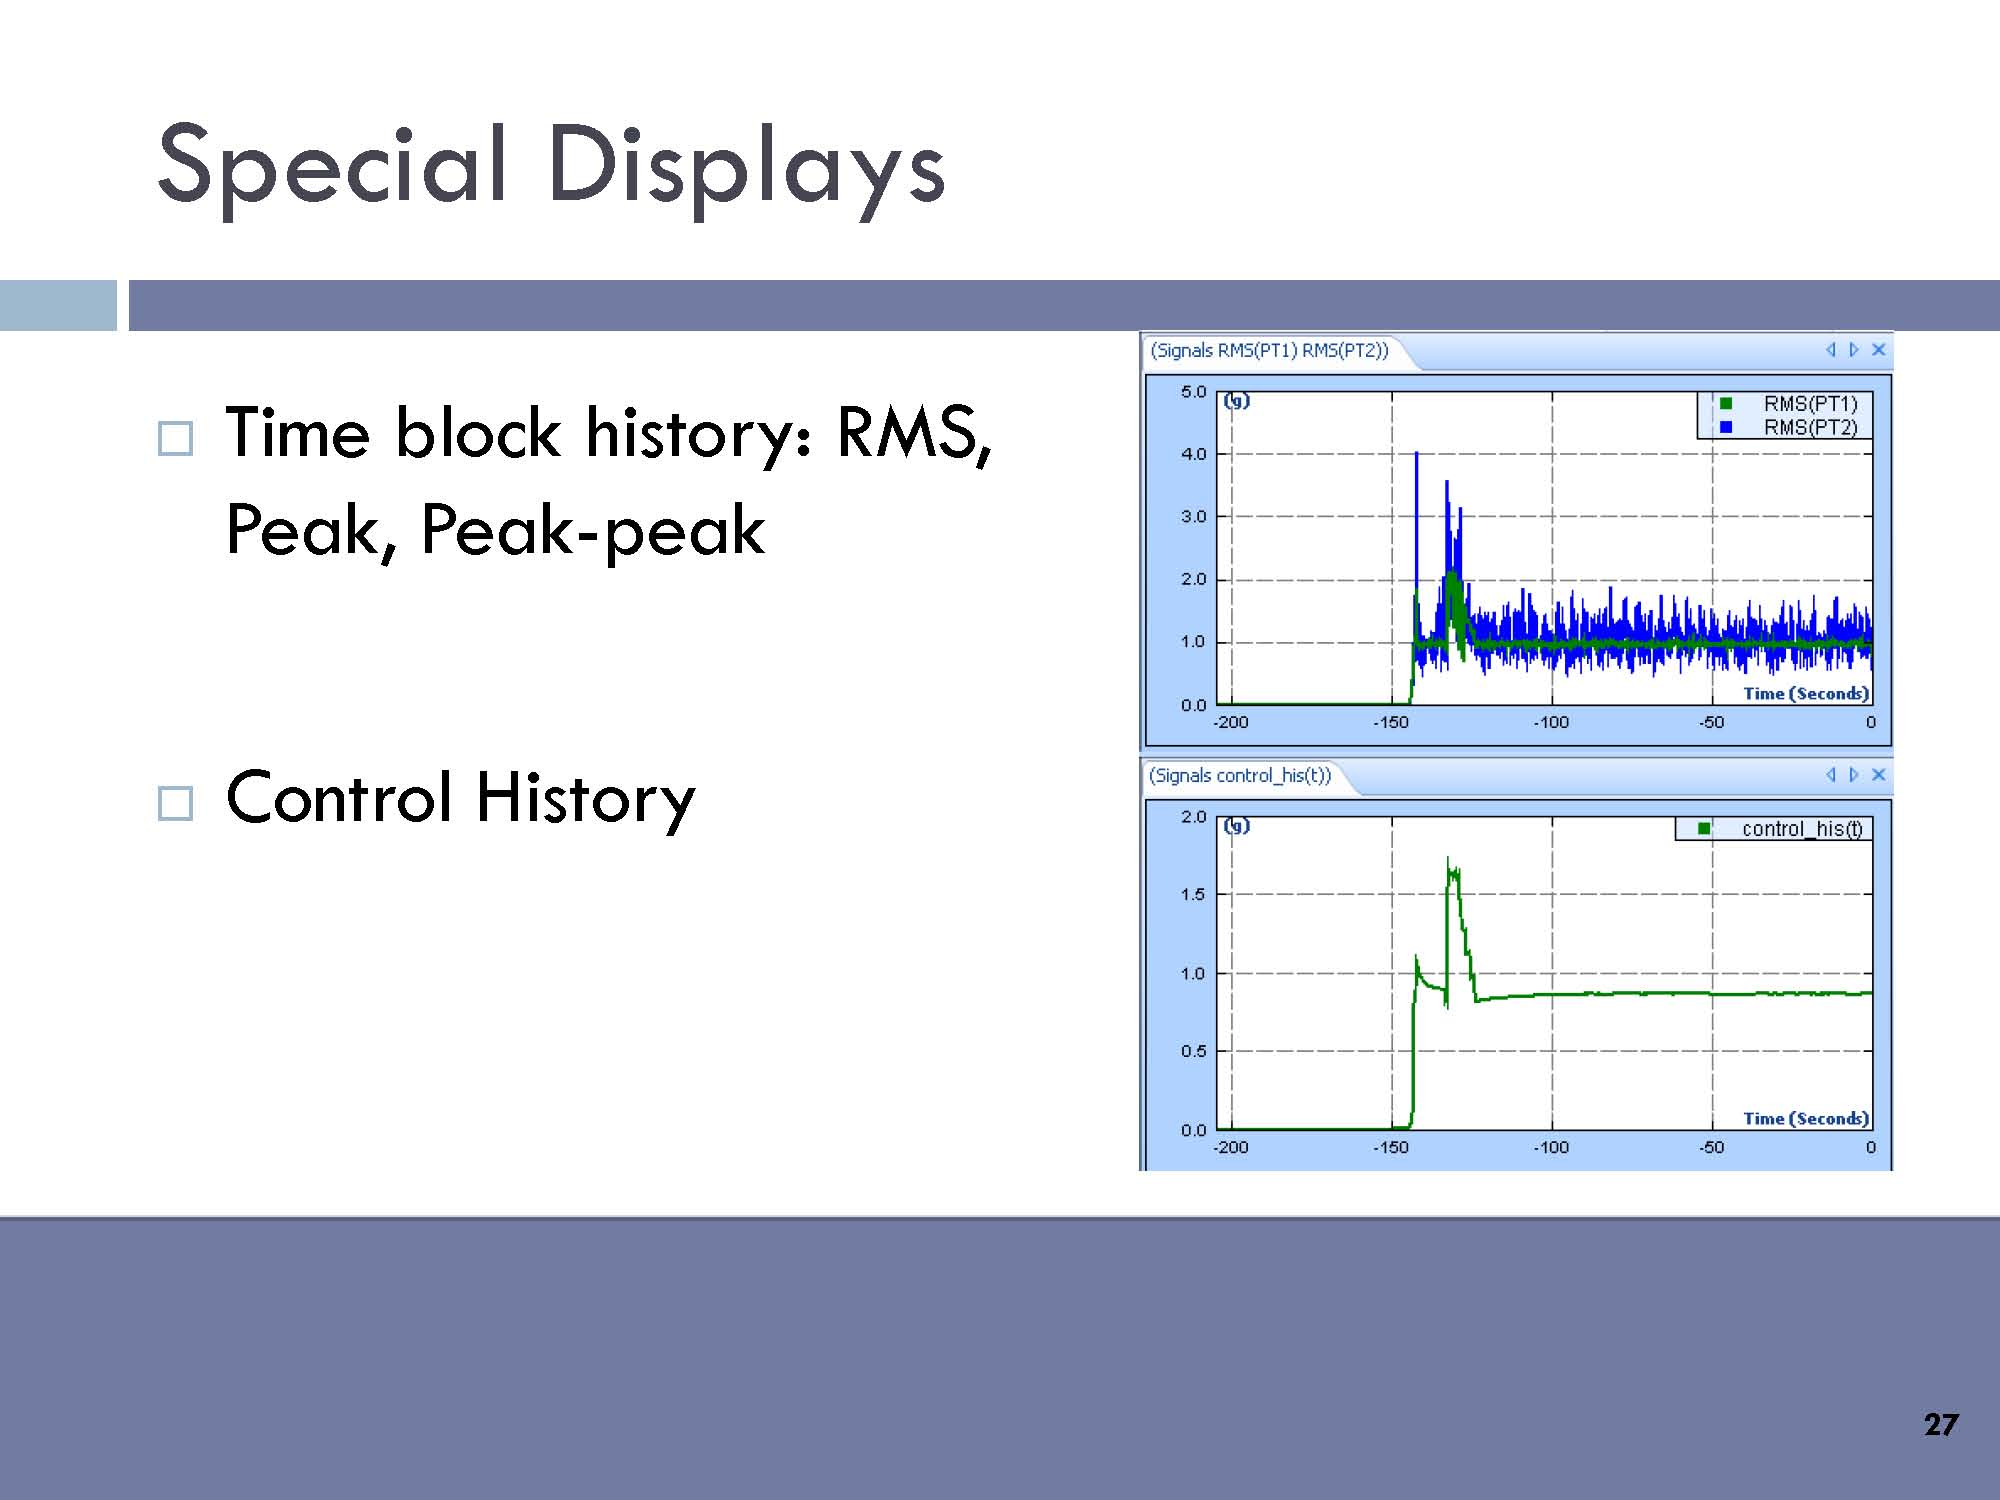 Special Displays: Time block history (RMS, Peak, Peak-Peak) and Control History